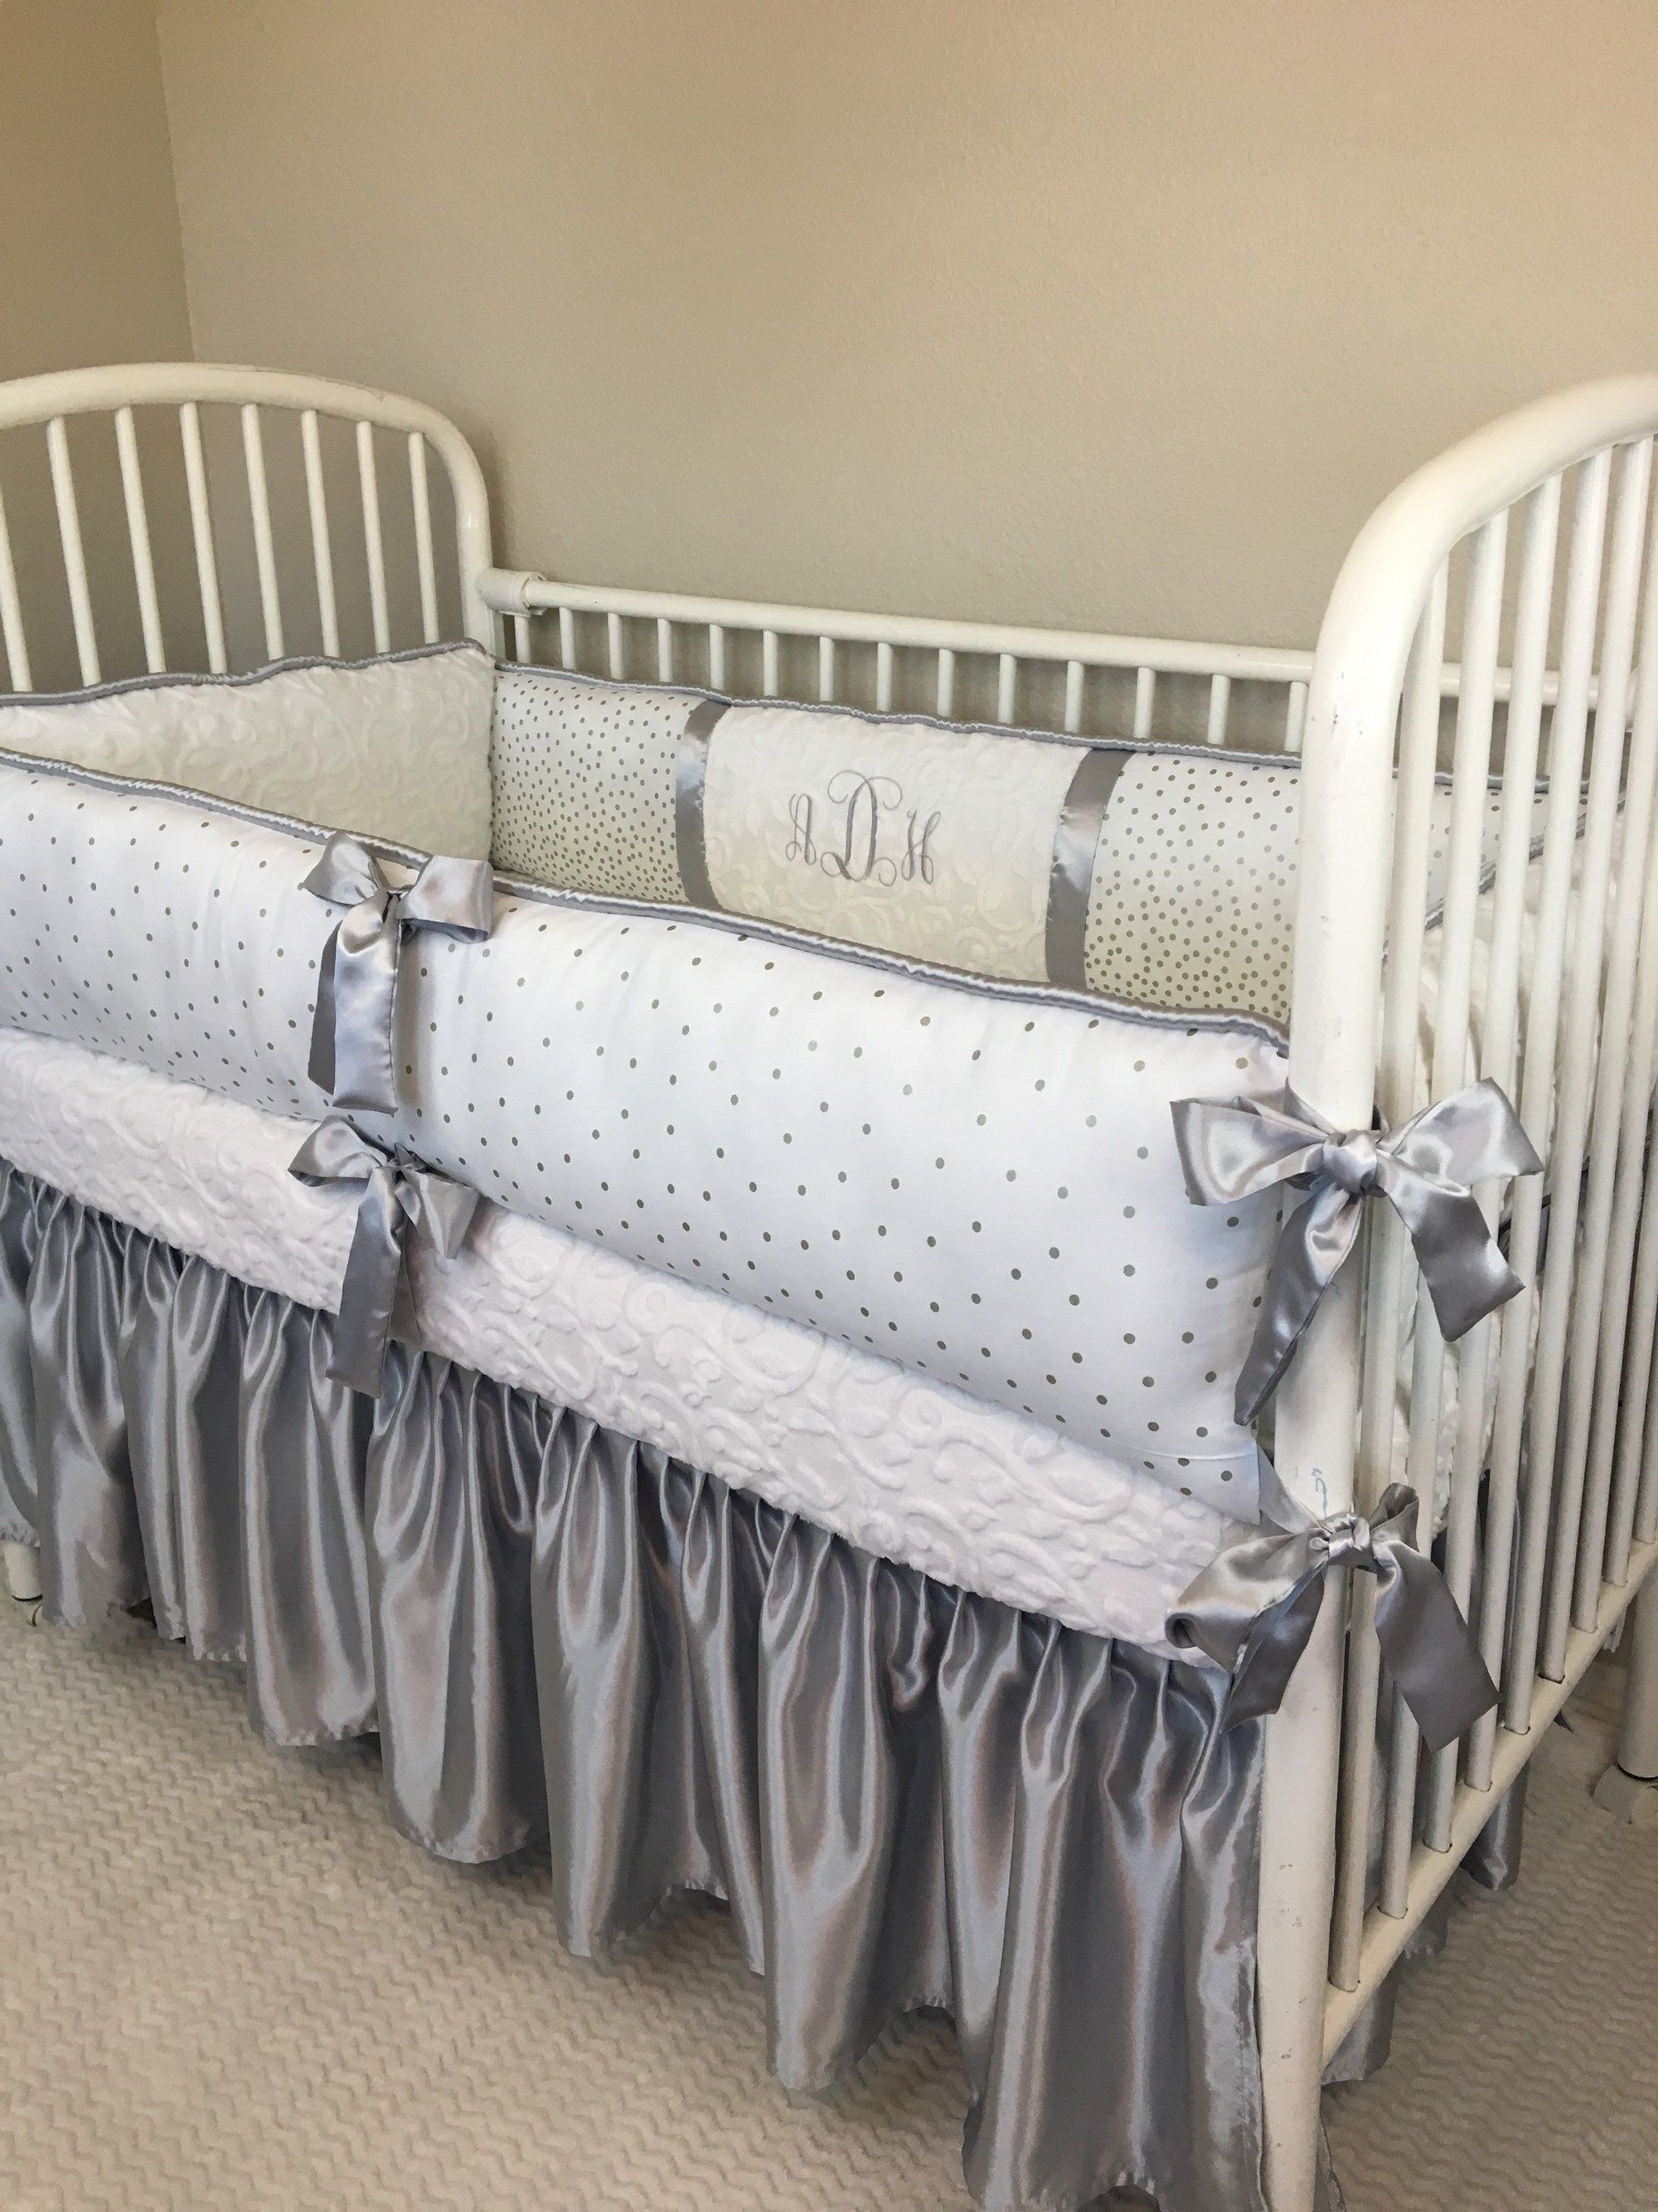 Silver Satin Crib Skirt Baby Bedding Crib Set Abusymother Baby